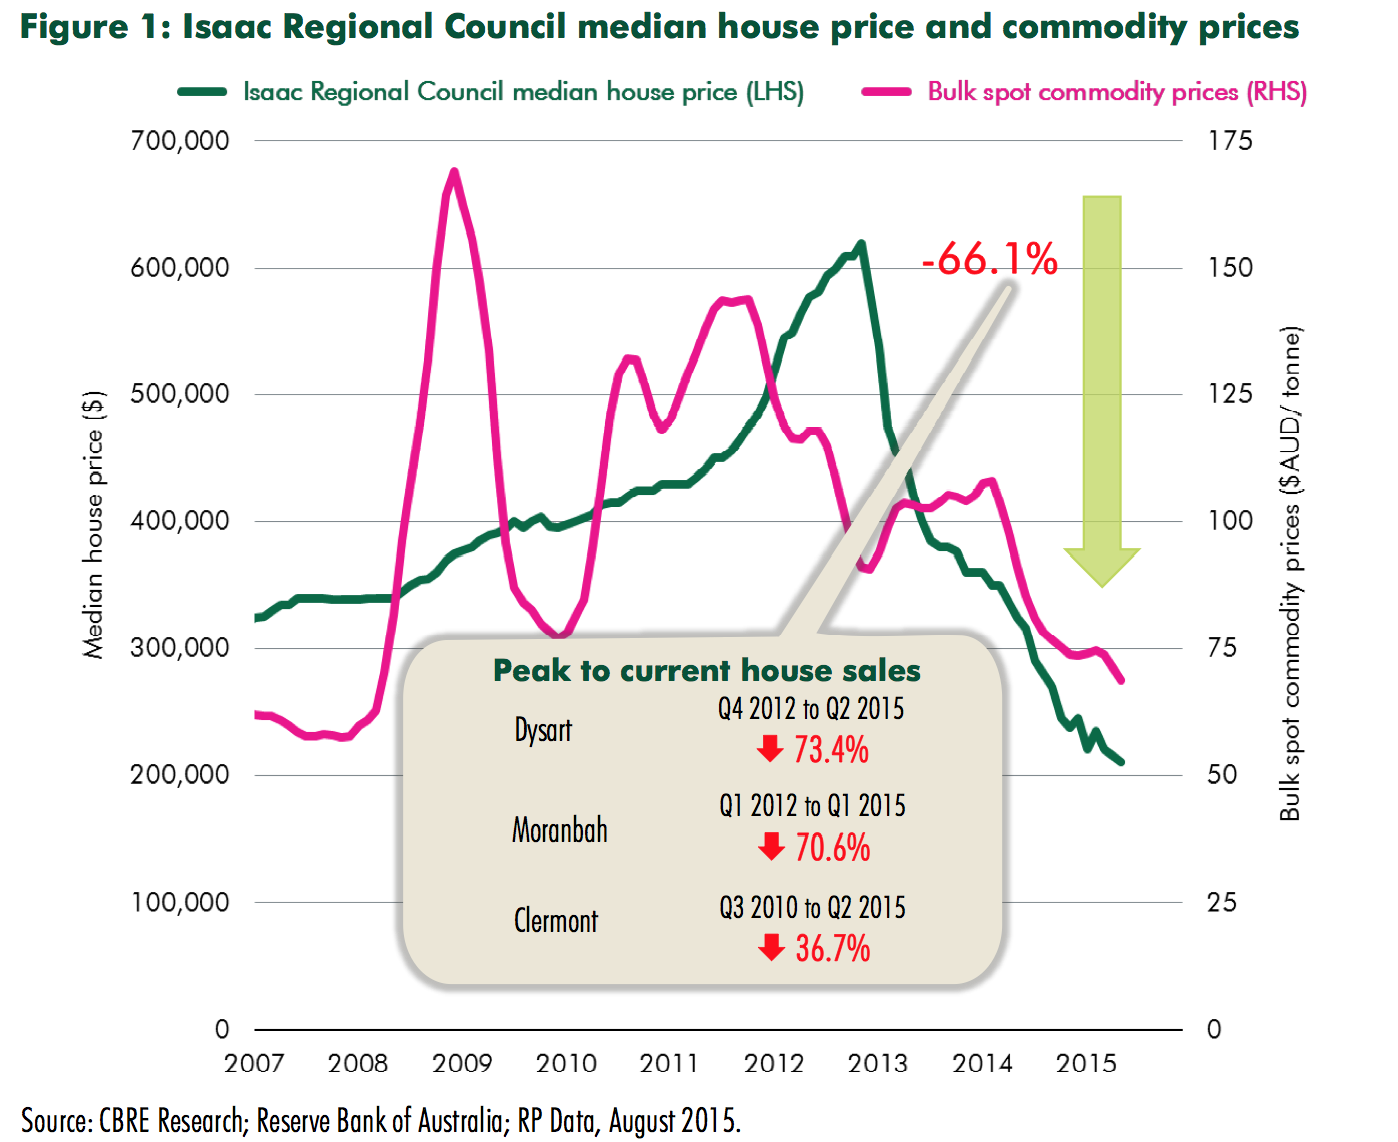 Mining towns Dysart and Moranbah down 70% in worst hit